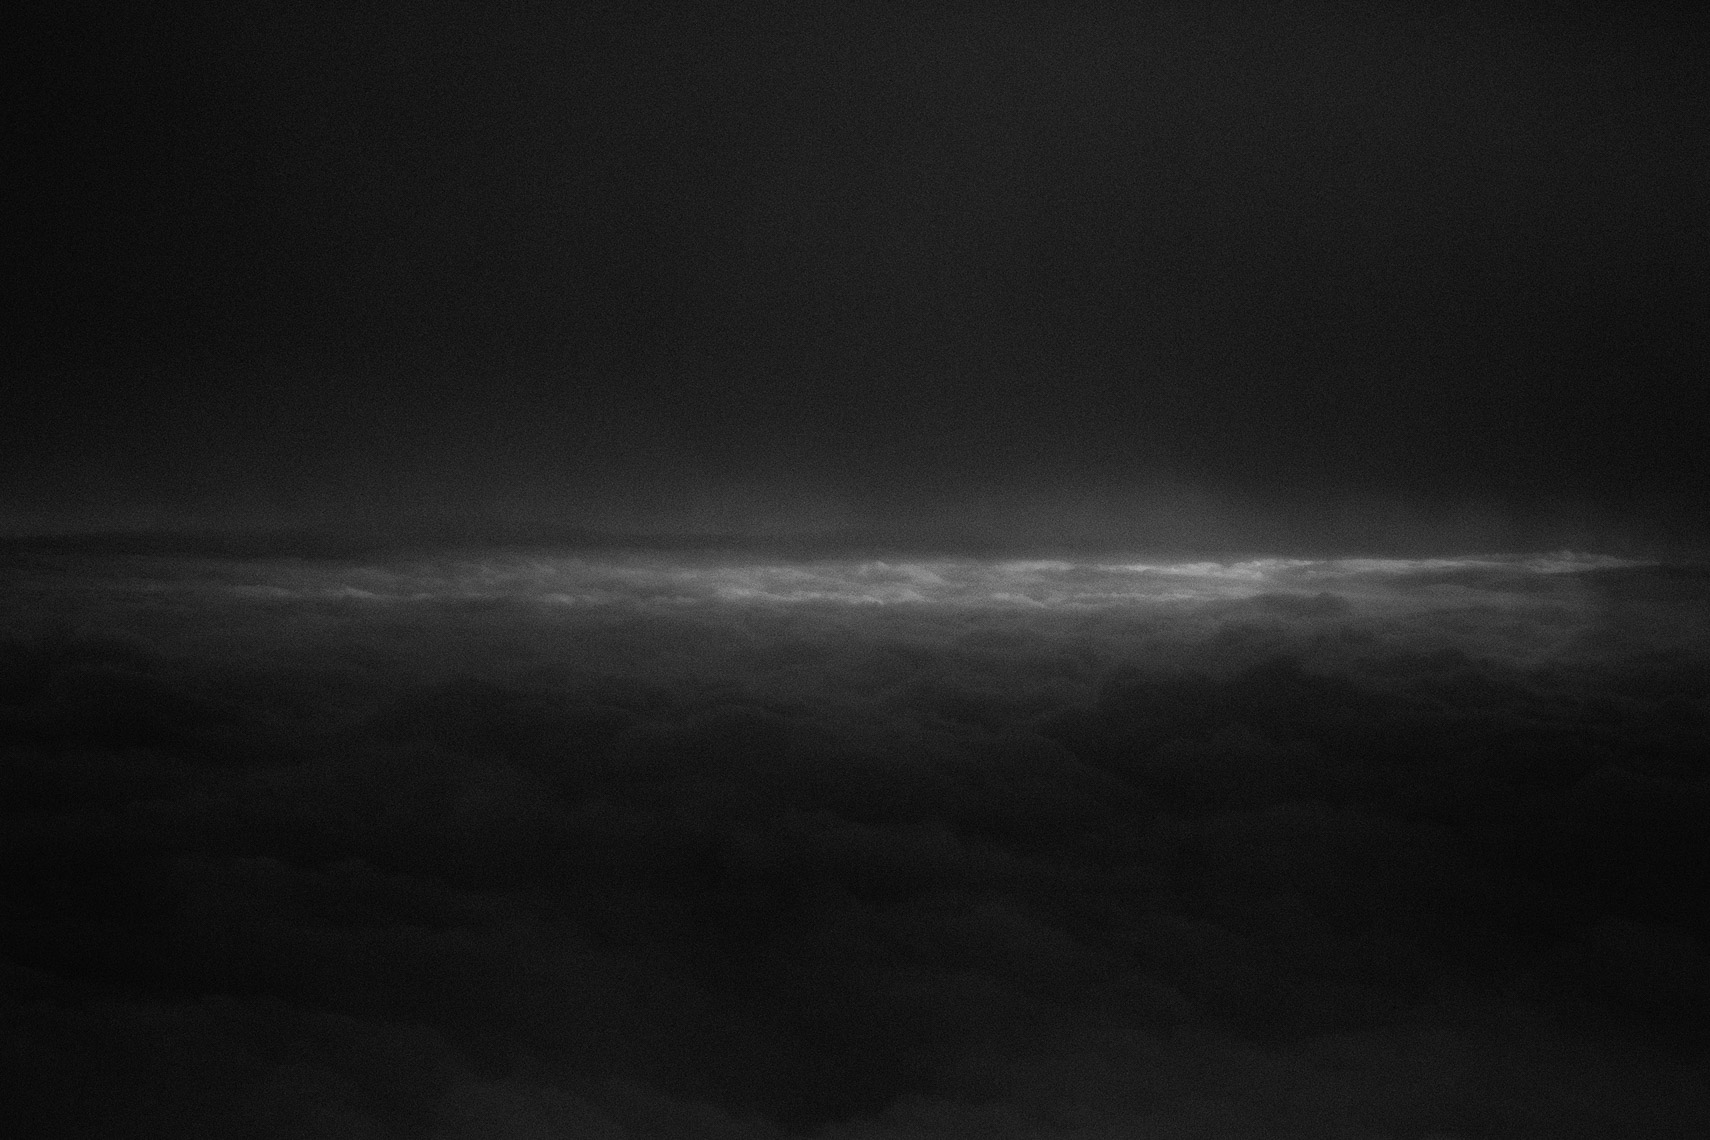 Clouds Full. Ground. Images of the personal interaction between travel and remaining still during my travels.